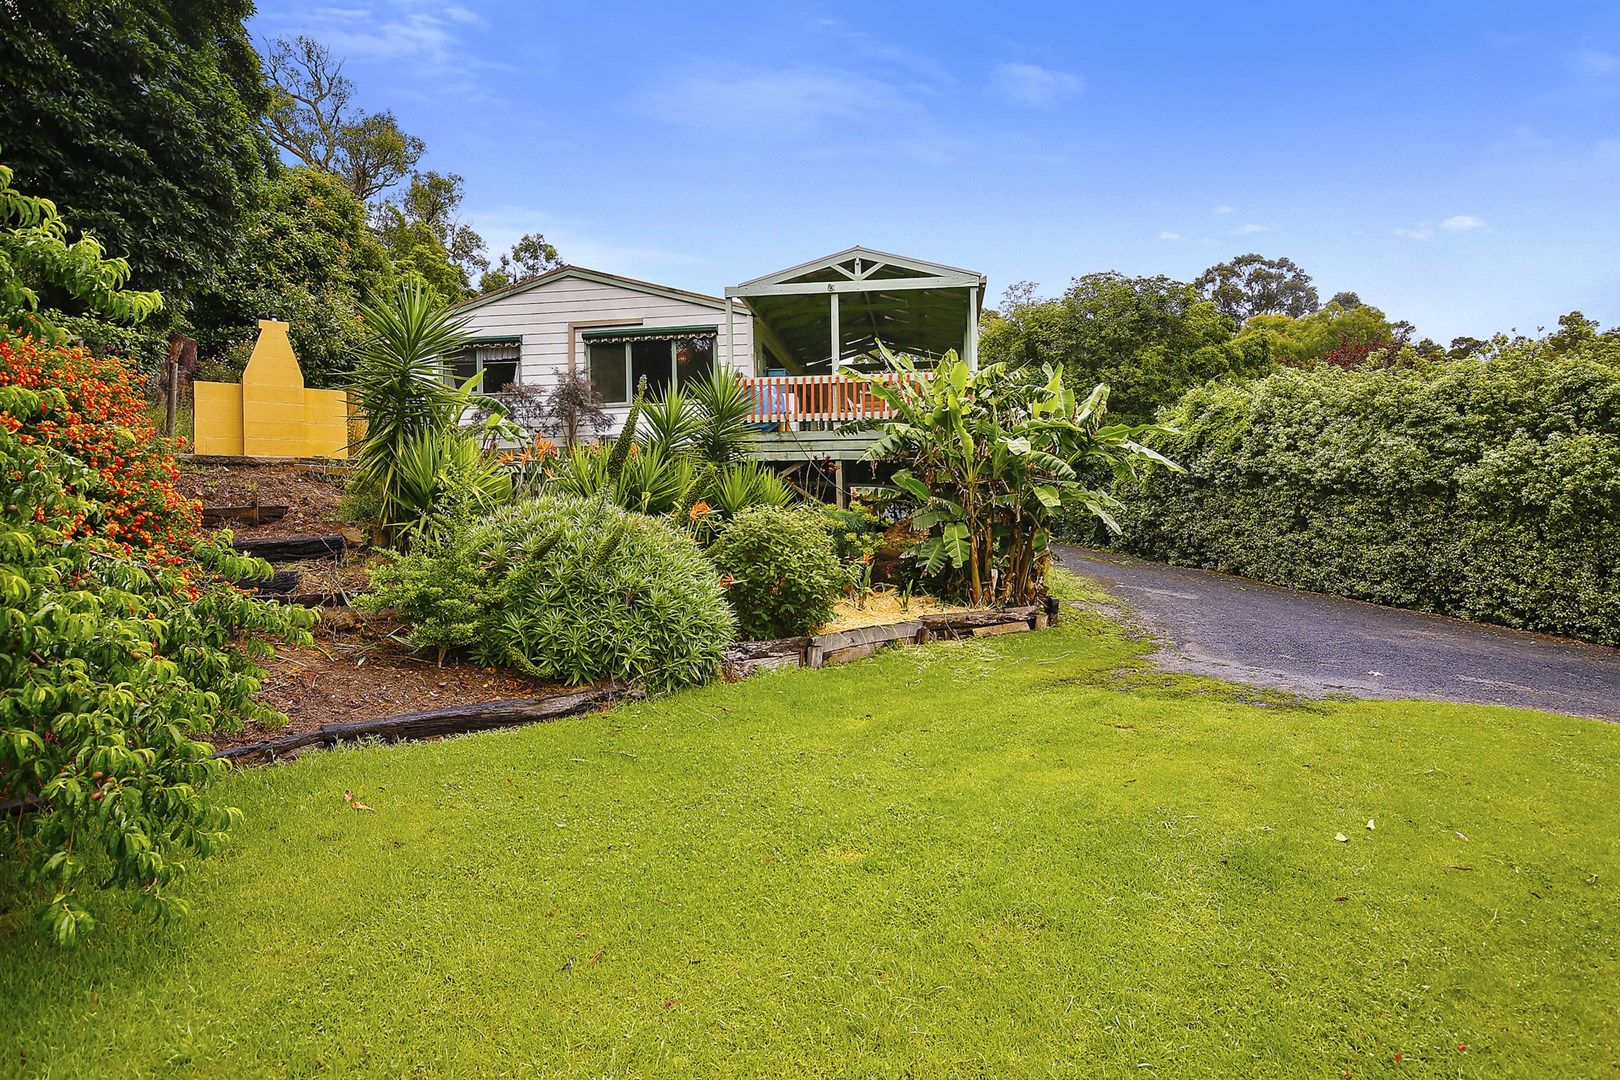 41 Old Warburton Highway, Seville East VIC 3139, Image 0